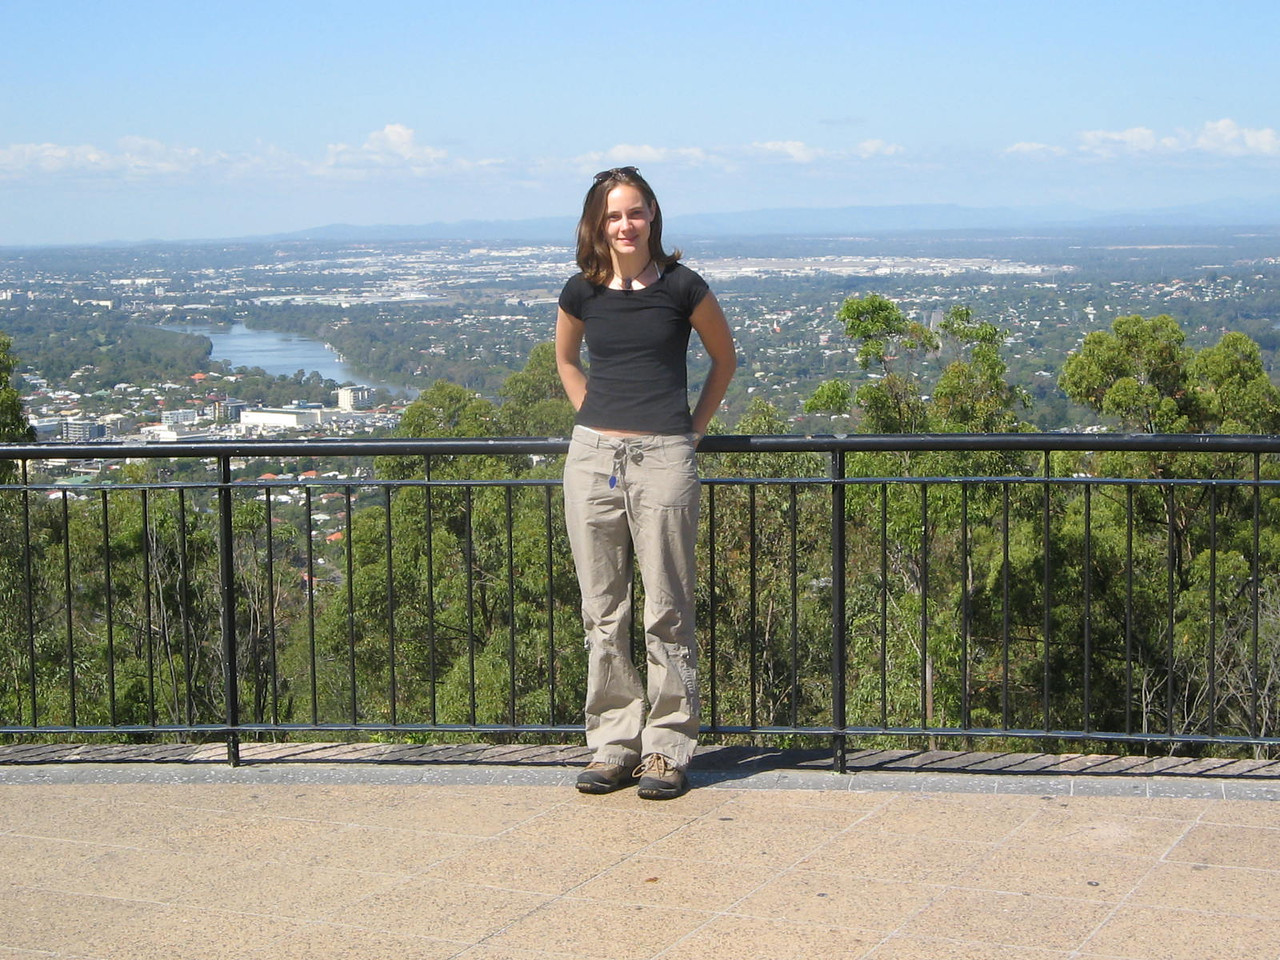 mt coot-tha overlooking brisbane